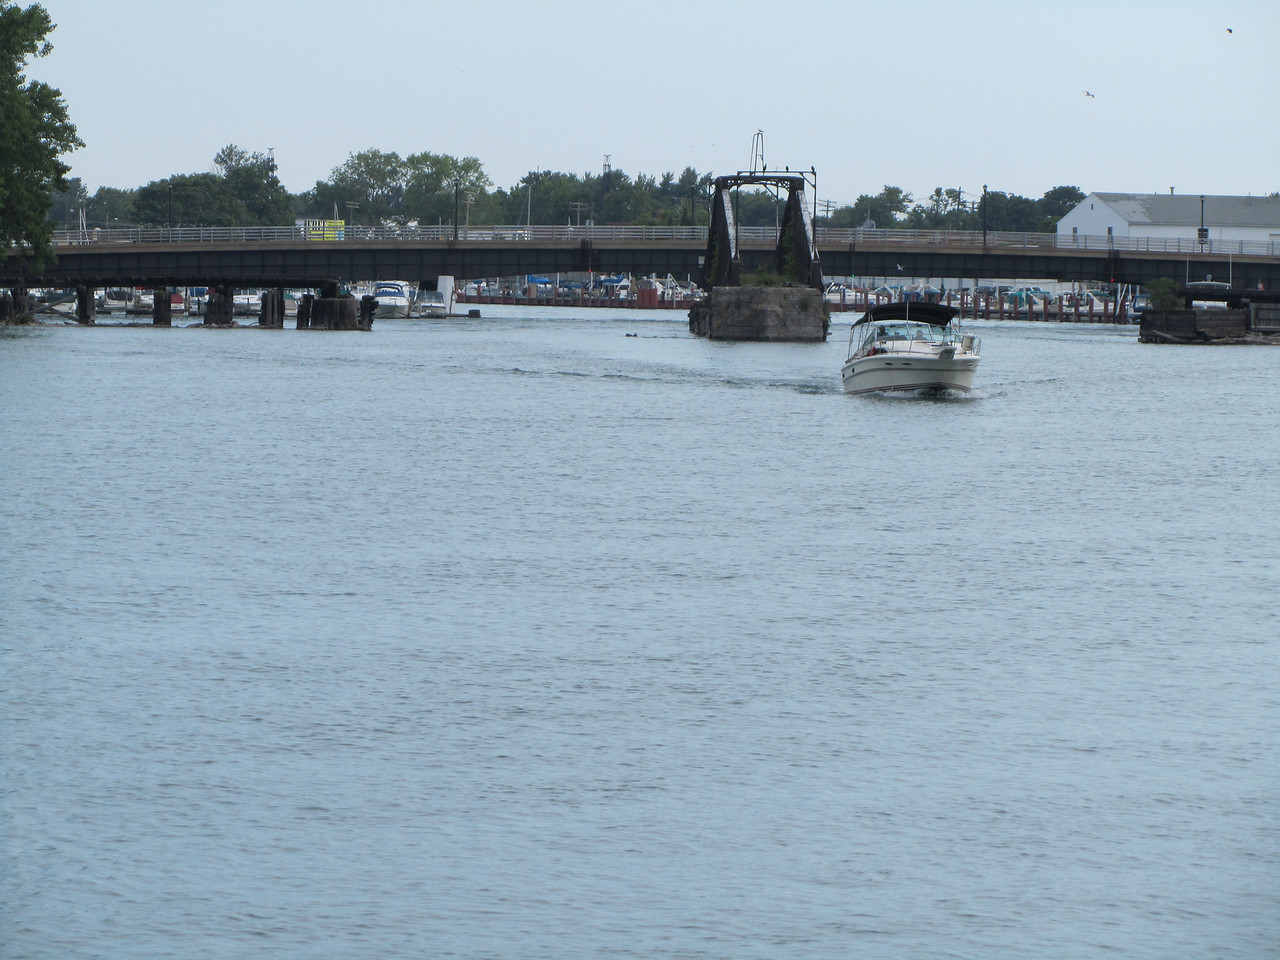 An old rotating bridge opened up to allow a boat to pass.